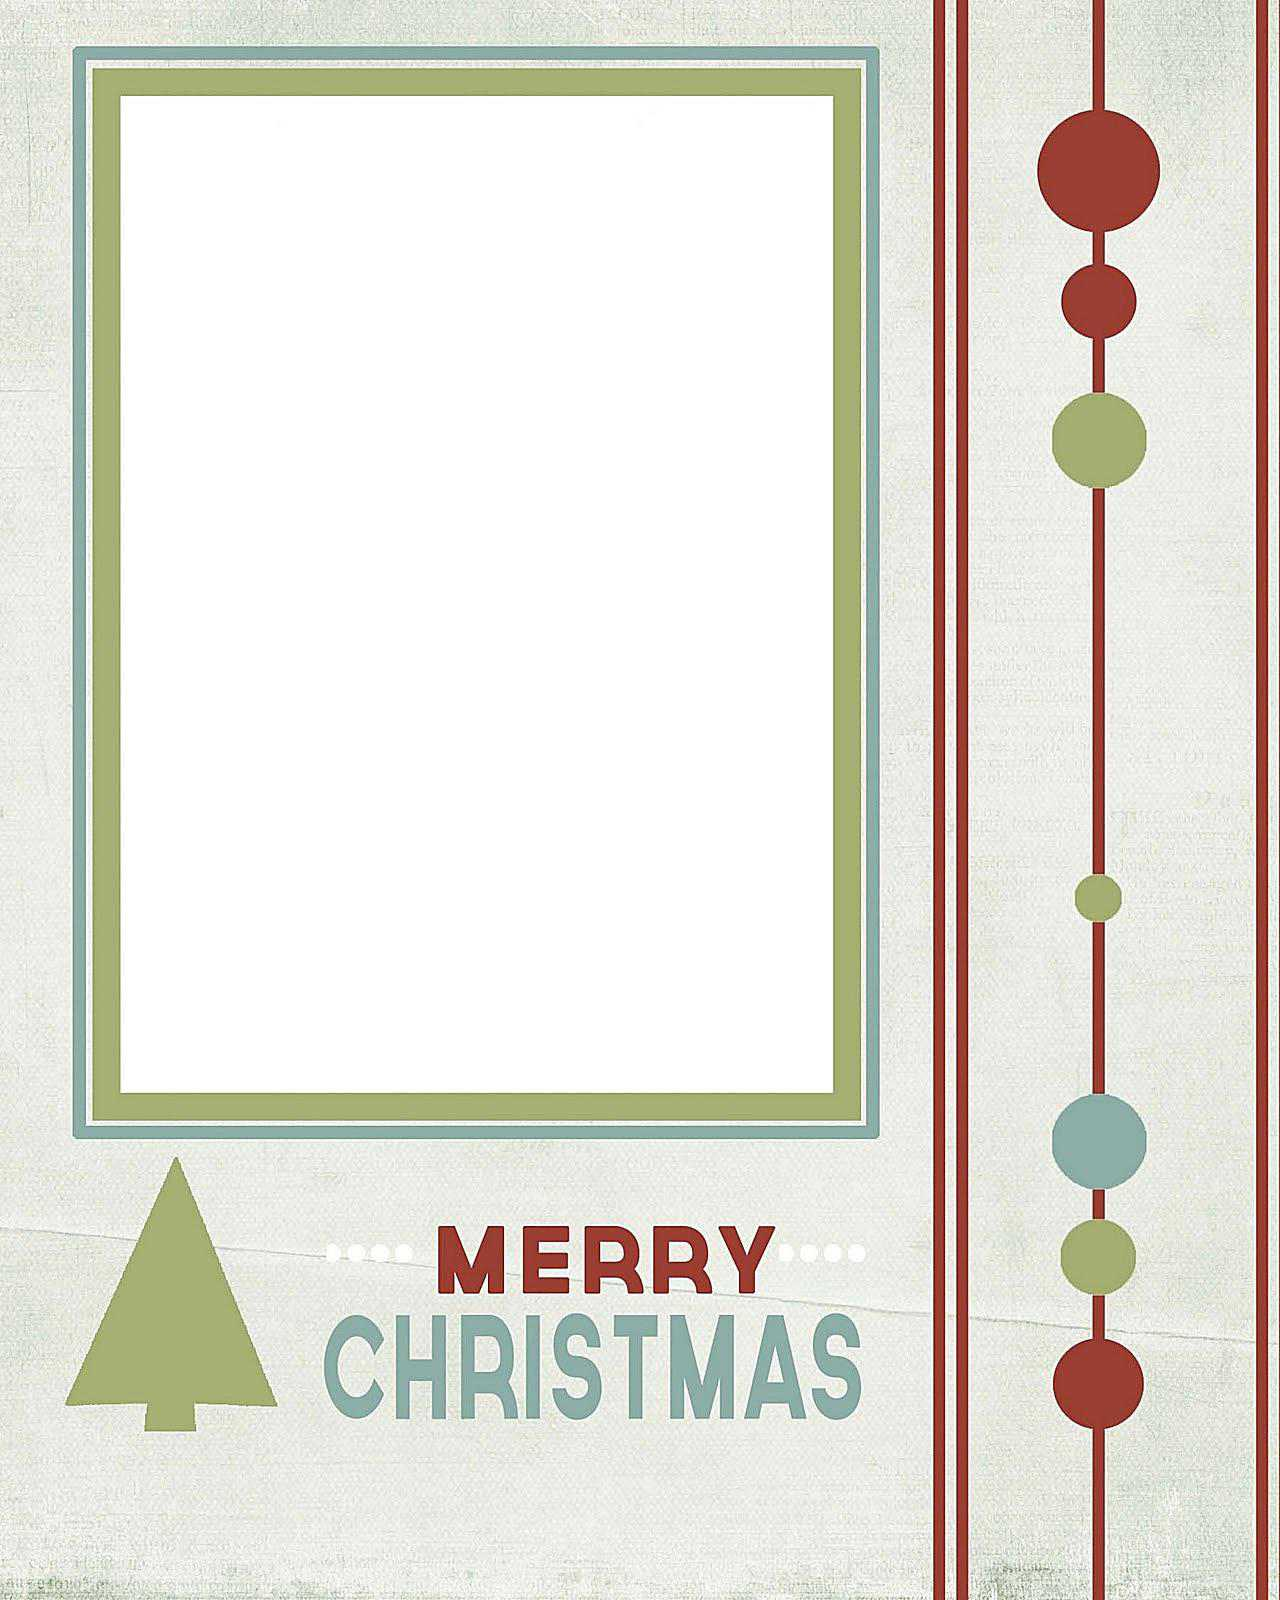 76 Free Christmas Card Template To And From Download by Christmas Card Template To And From